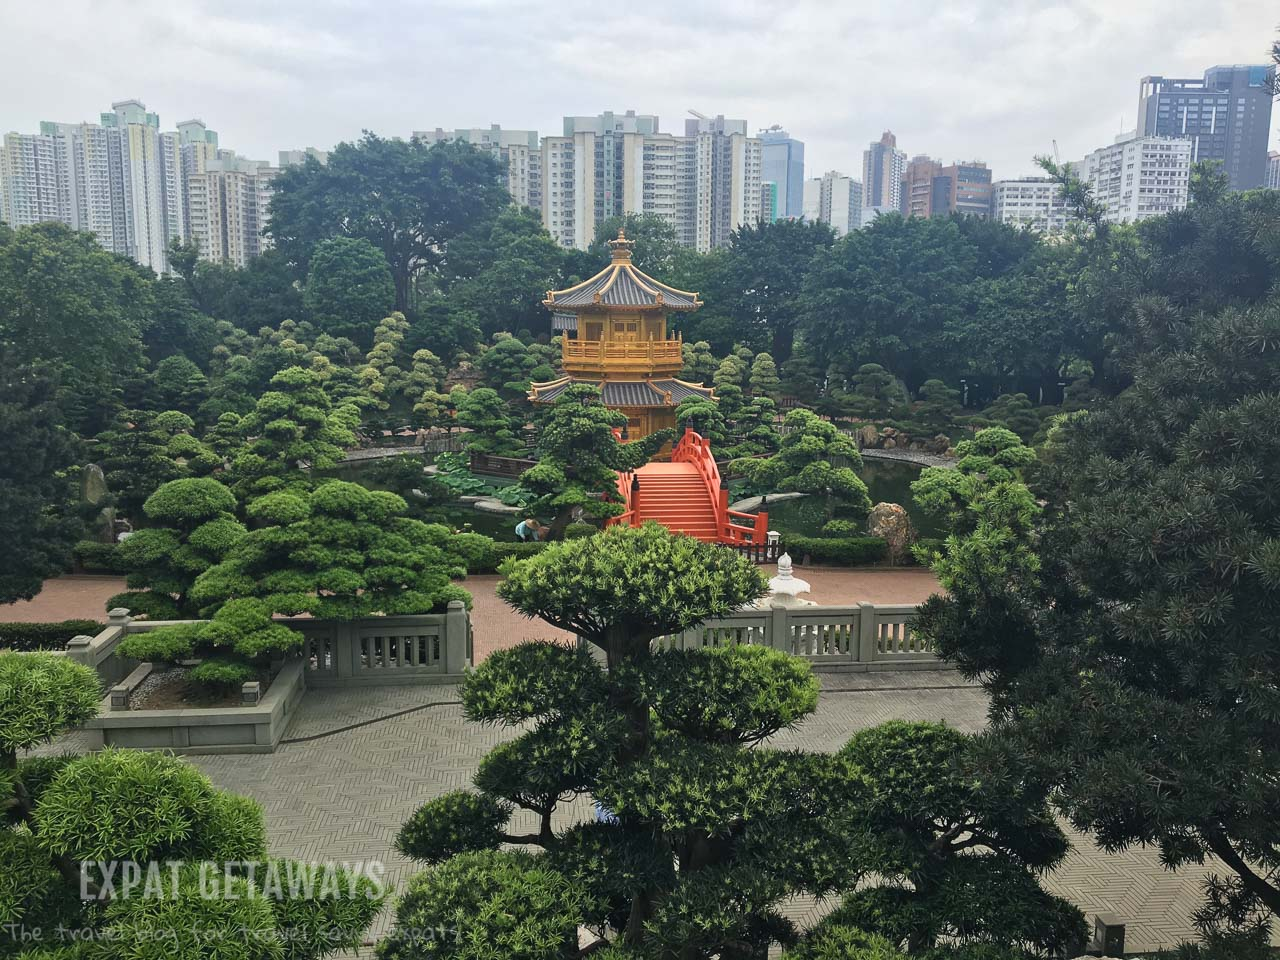 The Nan Lian Gardens and Chi Lin Nunnery are a tranquil oasis in bustling Hong Kong.